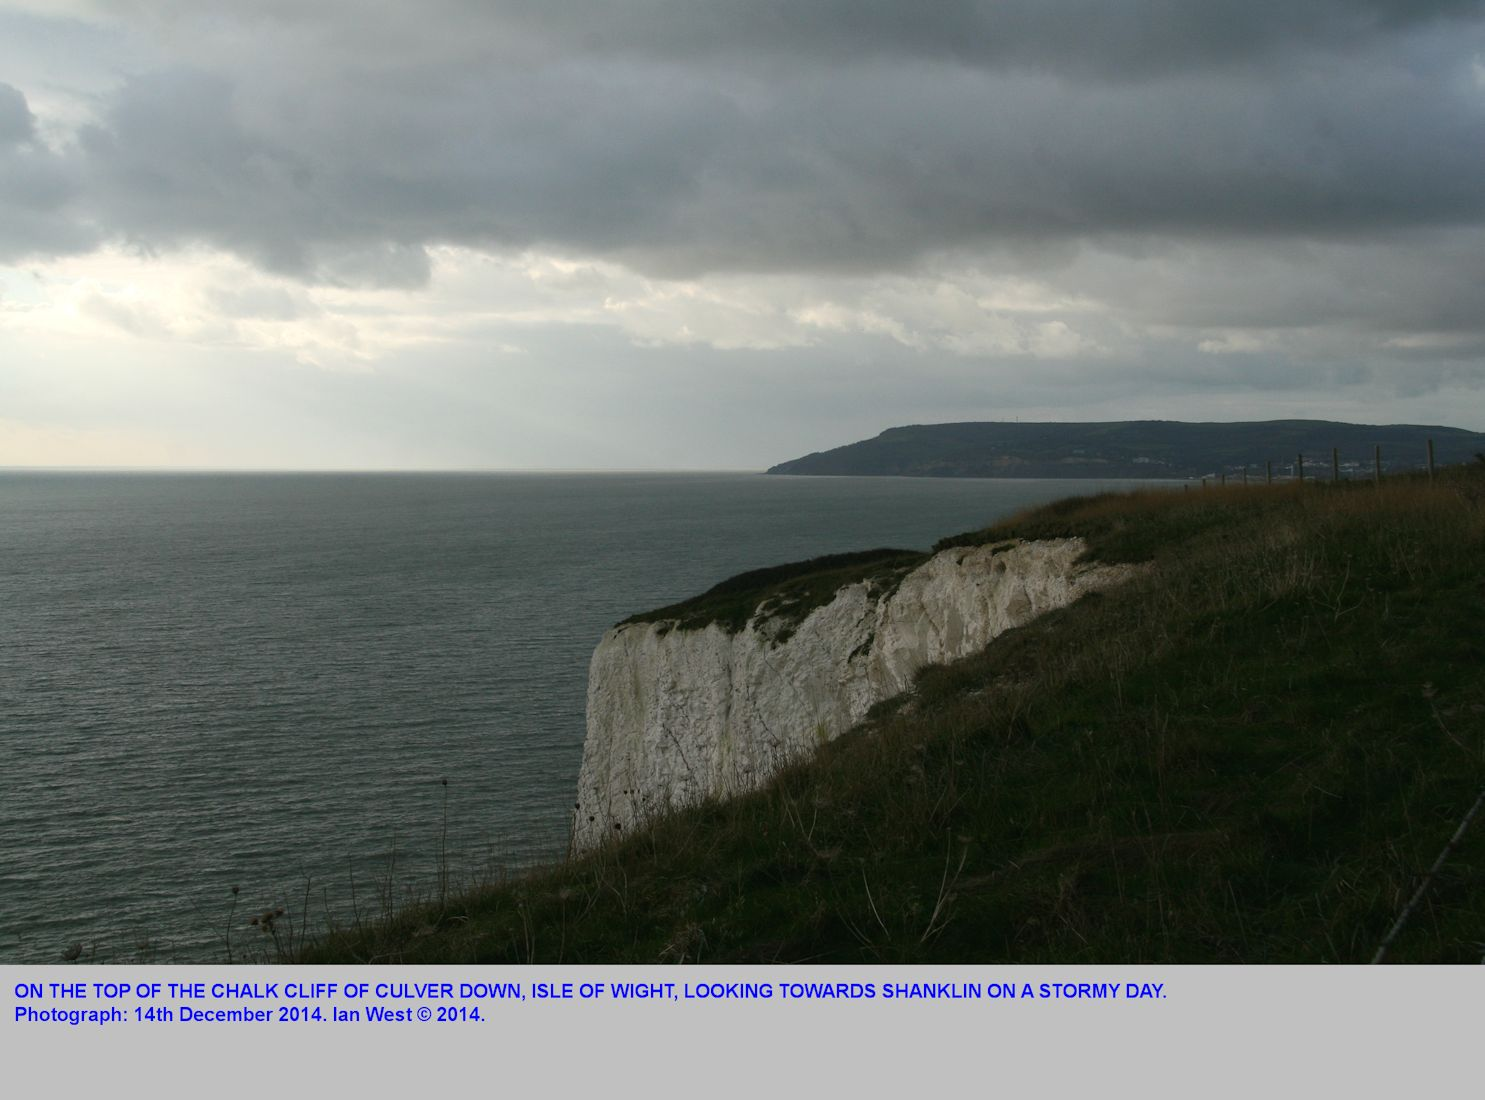 On Culver Down, Isle of Wight, near the edge of the vertical cliff of Chalk, on a stormy day, 14th December 2014